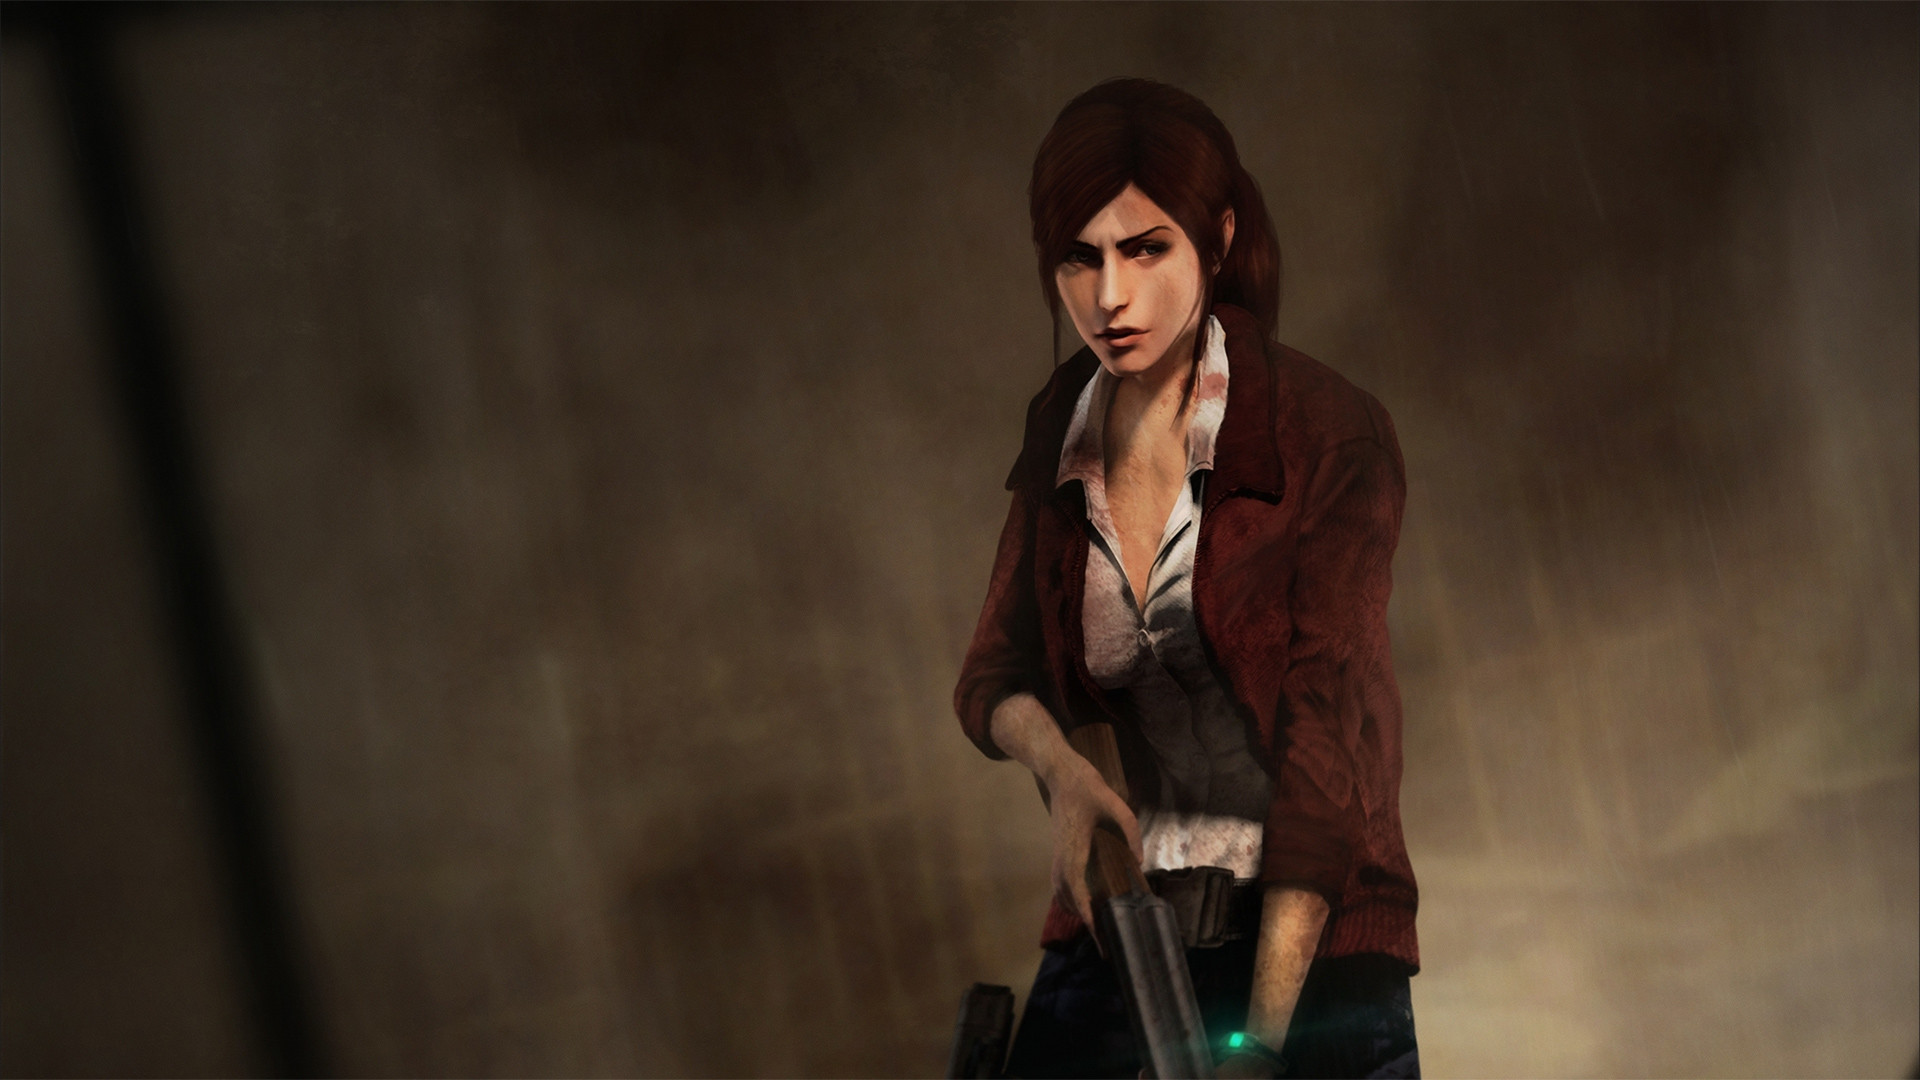 Res: 1920x1080, Claire Redfield Wallpaper from Resident Evil: Revelations 2